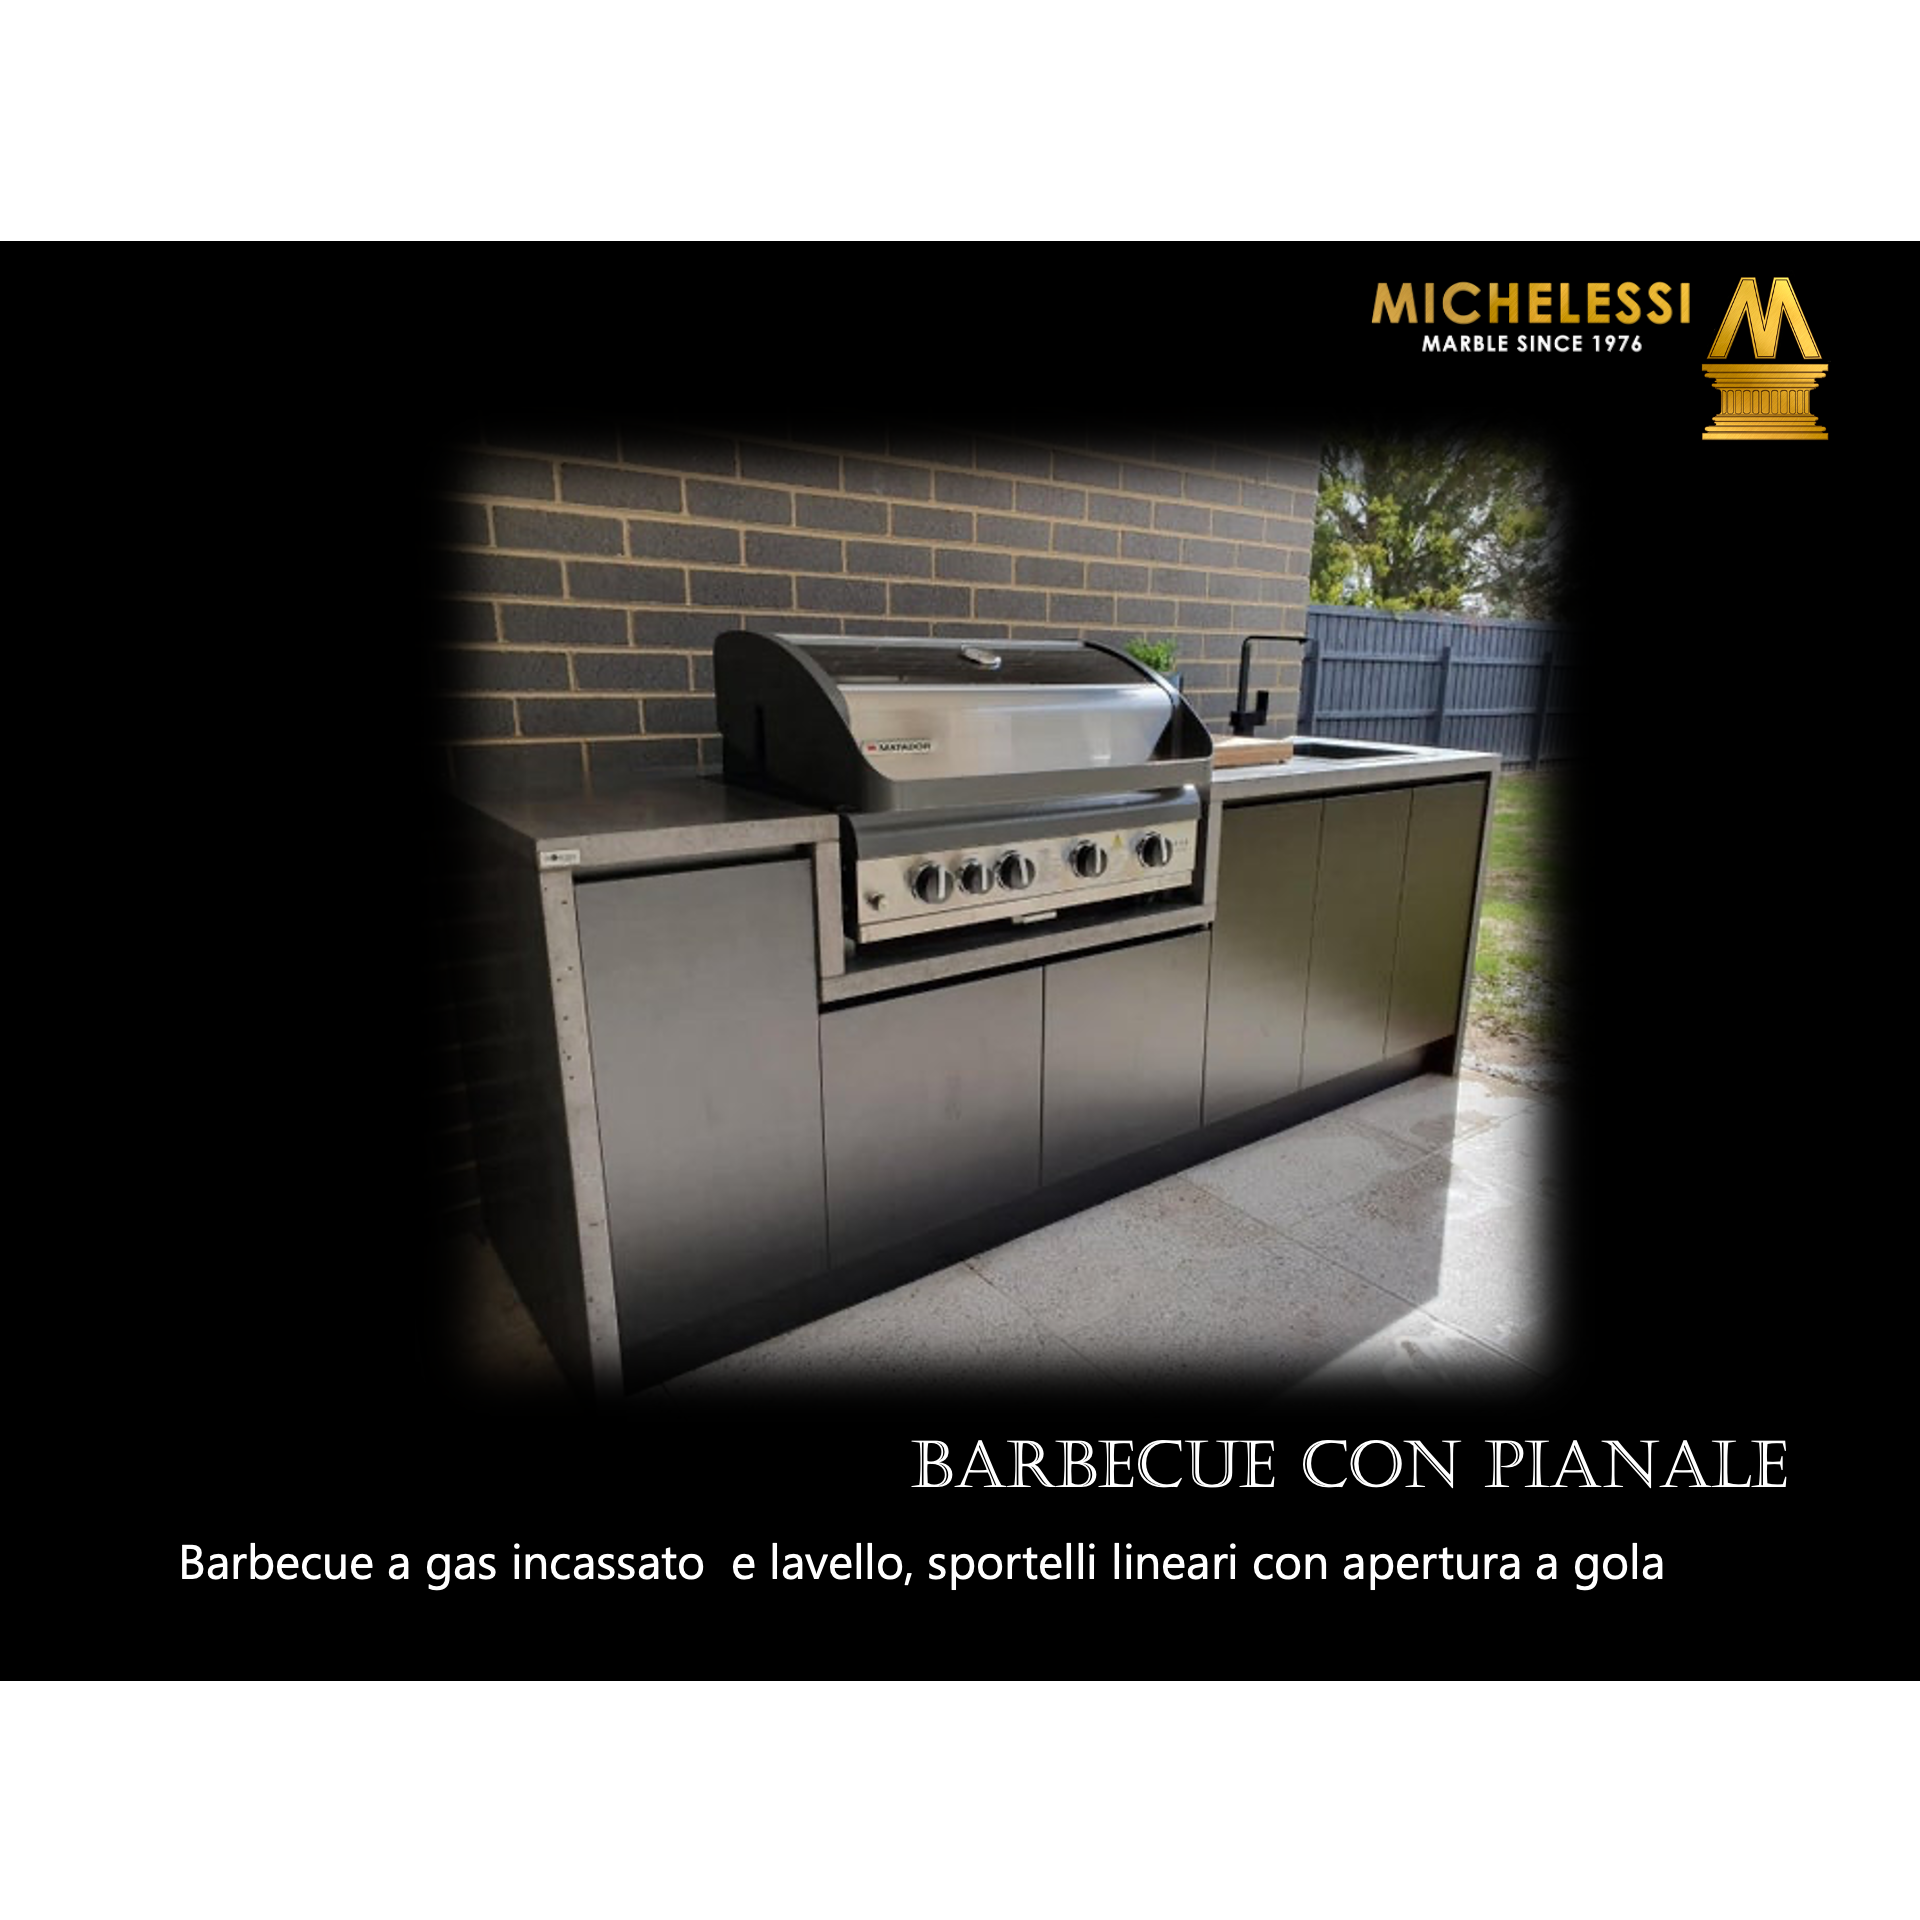 BARBECUE CON PIANALE